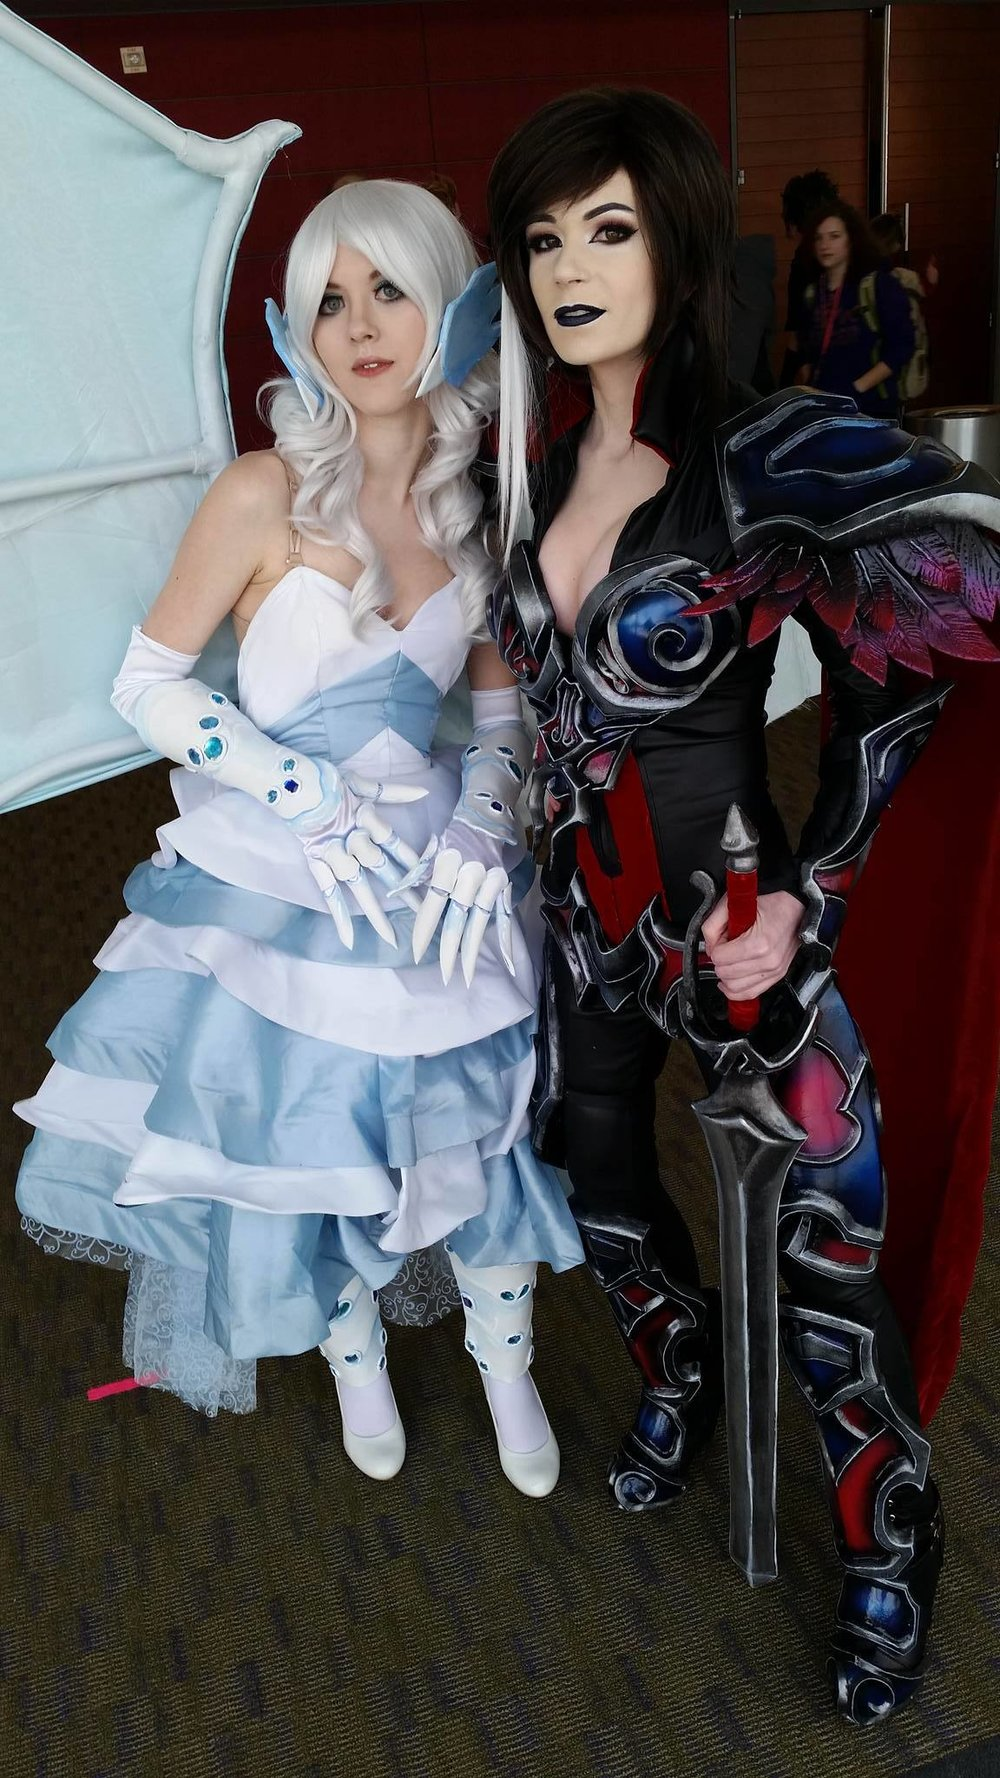 Especially when your friends are such amazing cosplayers! <3